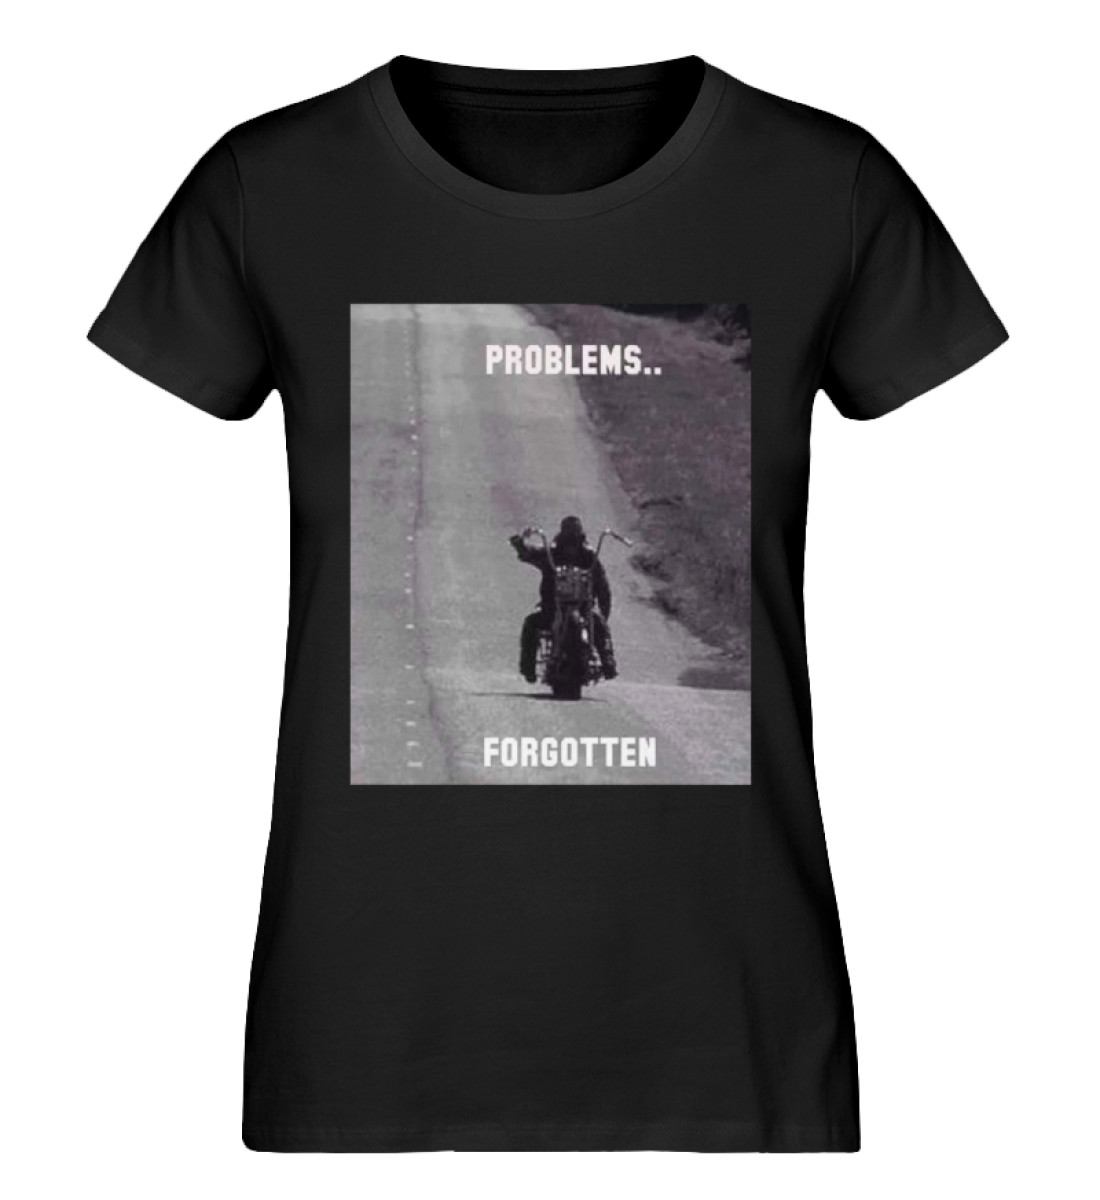 SpreeRocker - PROBLEMS...FORGOTTEN - Damen Premium Organic Shirt-16